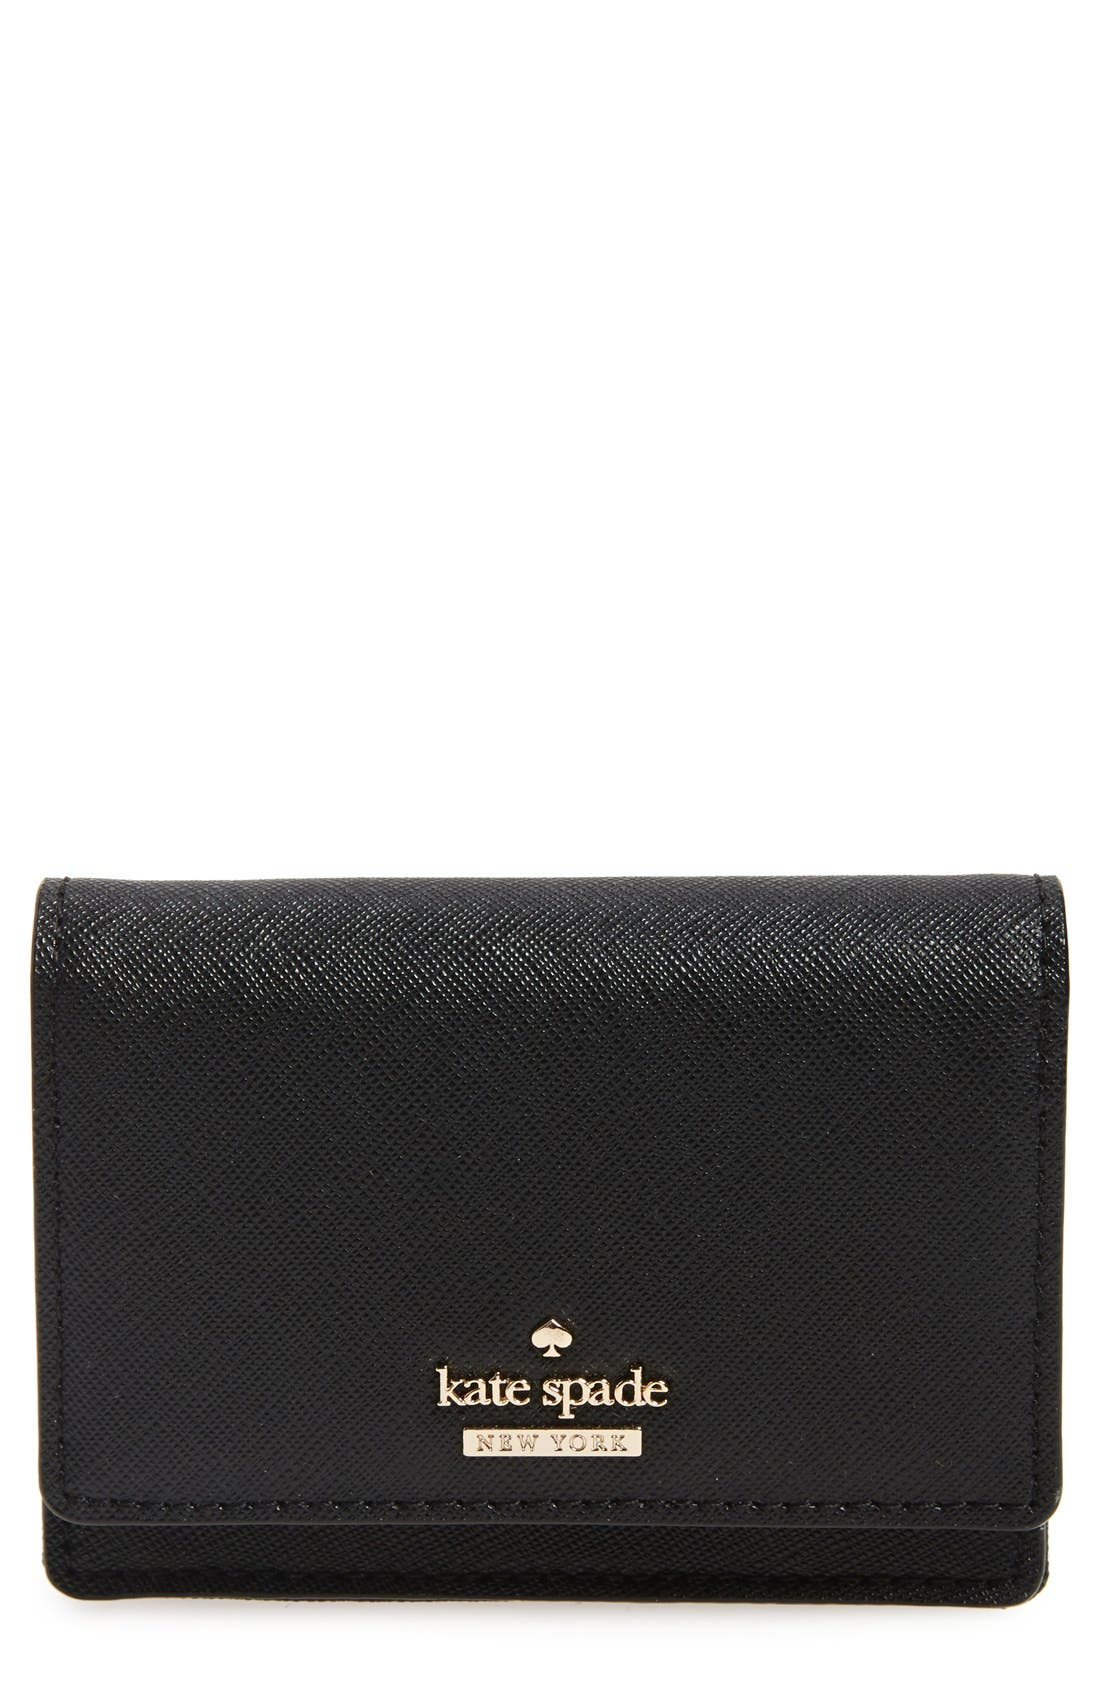 KATE SPADE NEW YORK 'cameron street - beca' textured leather wallet, Main, color, 001